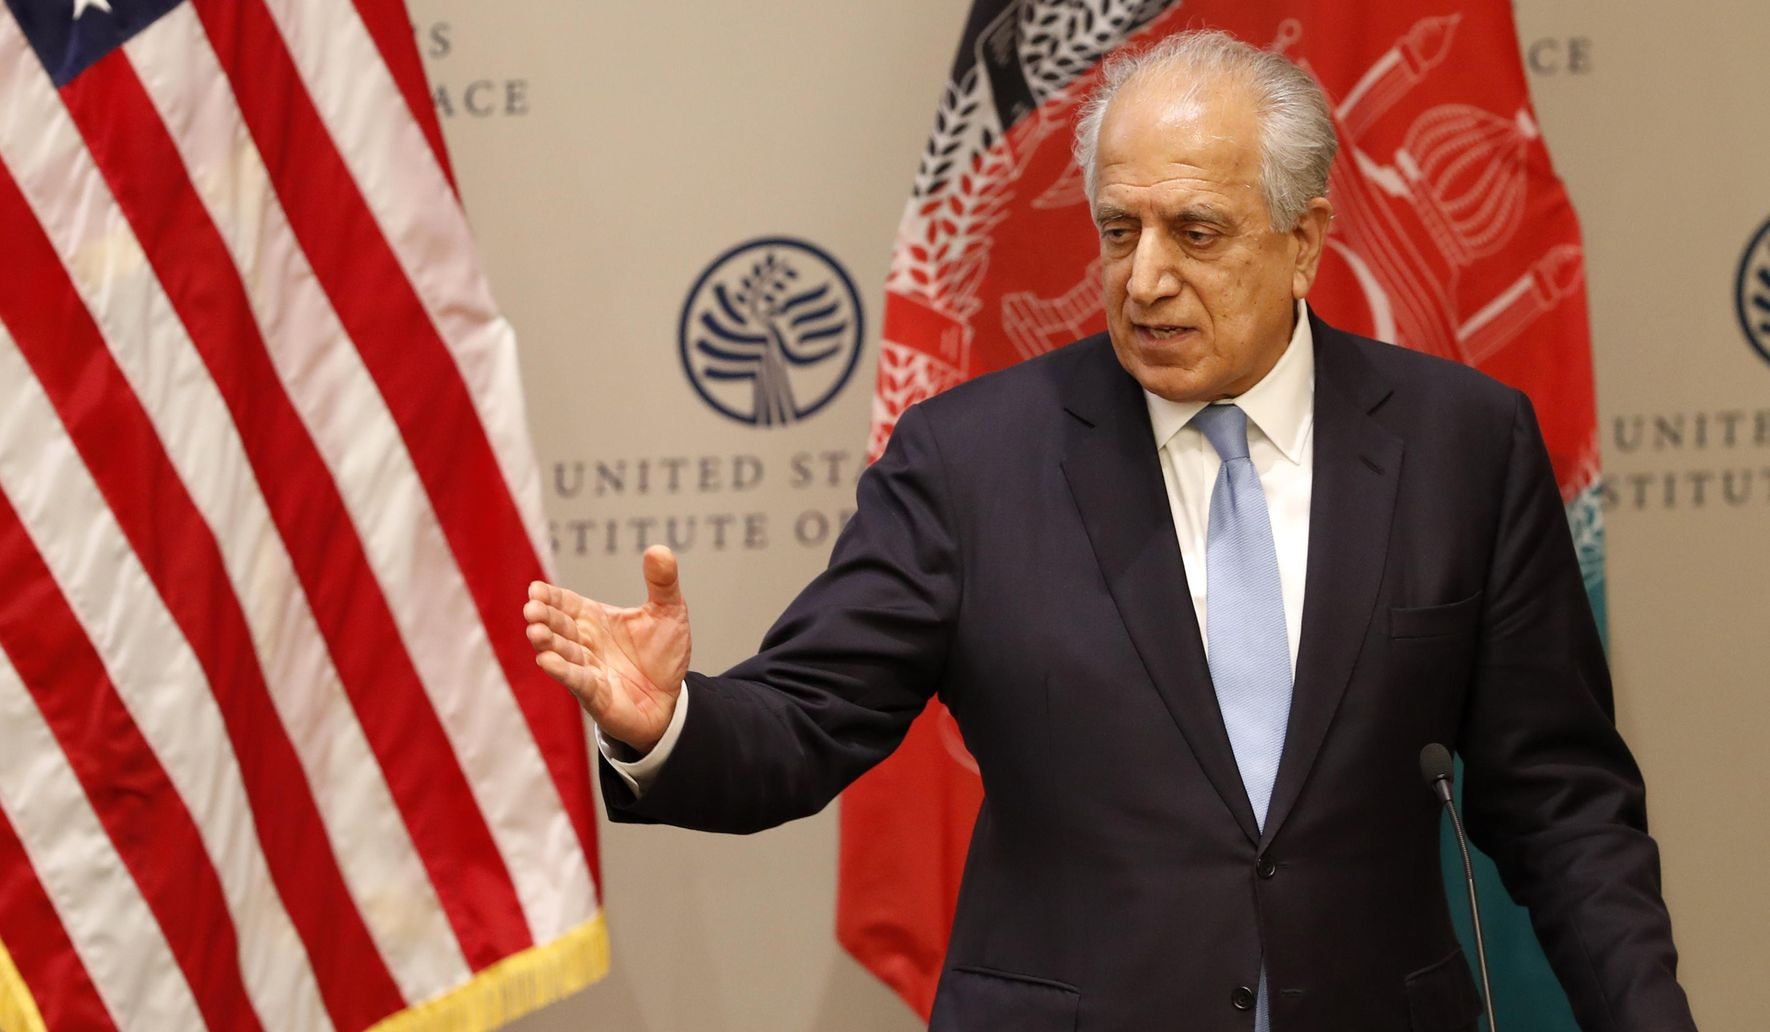 Trump envoy keeps door open to new Afghanistan peace talks